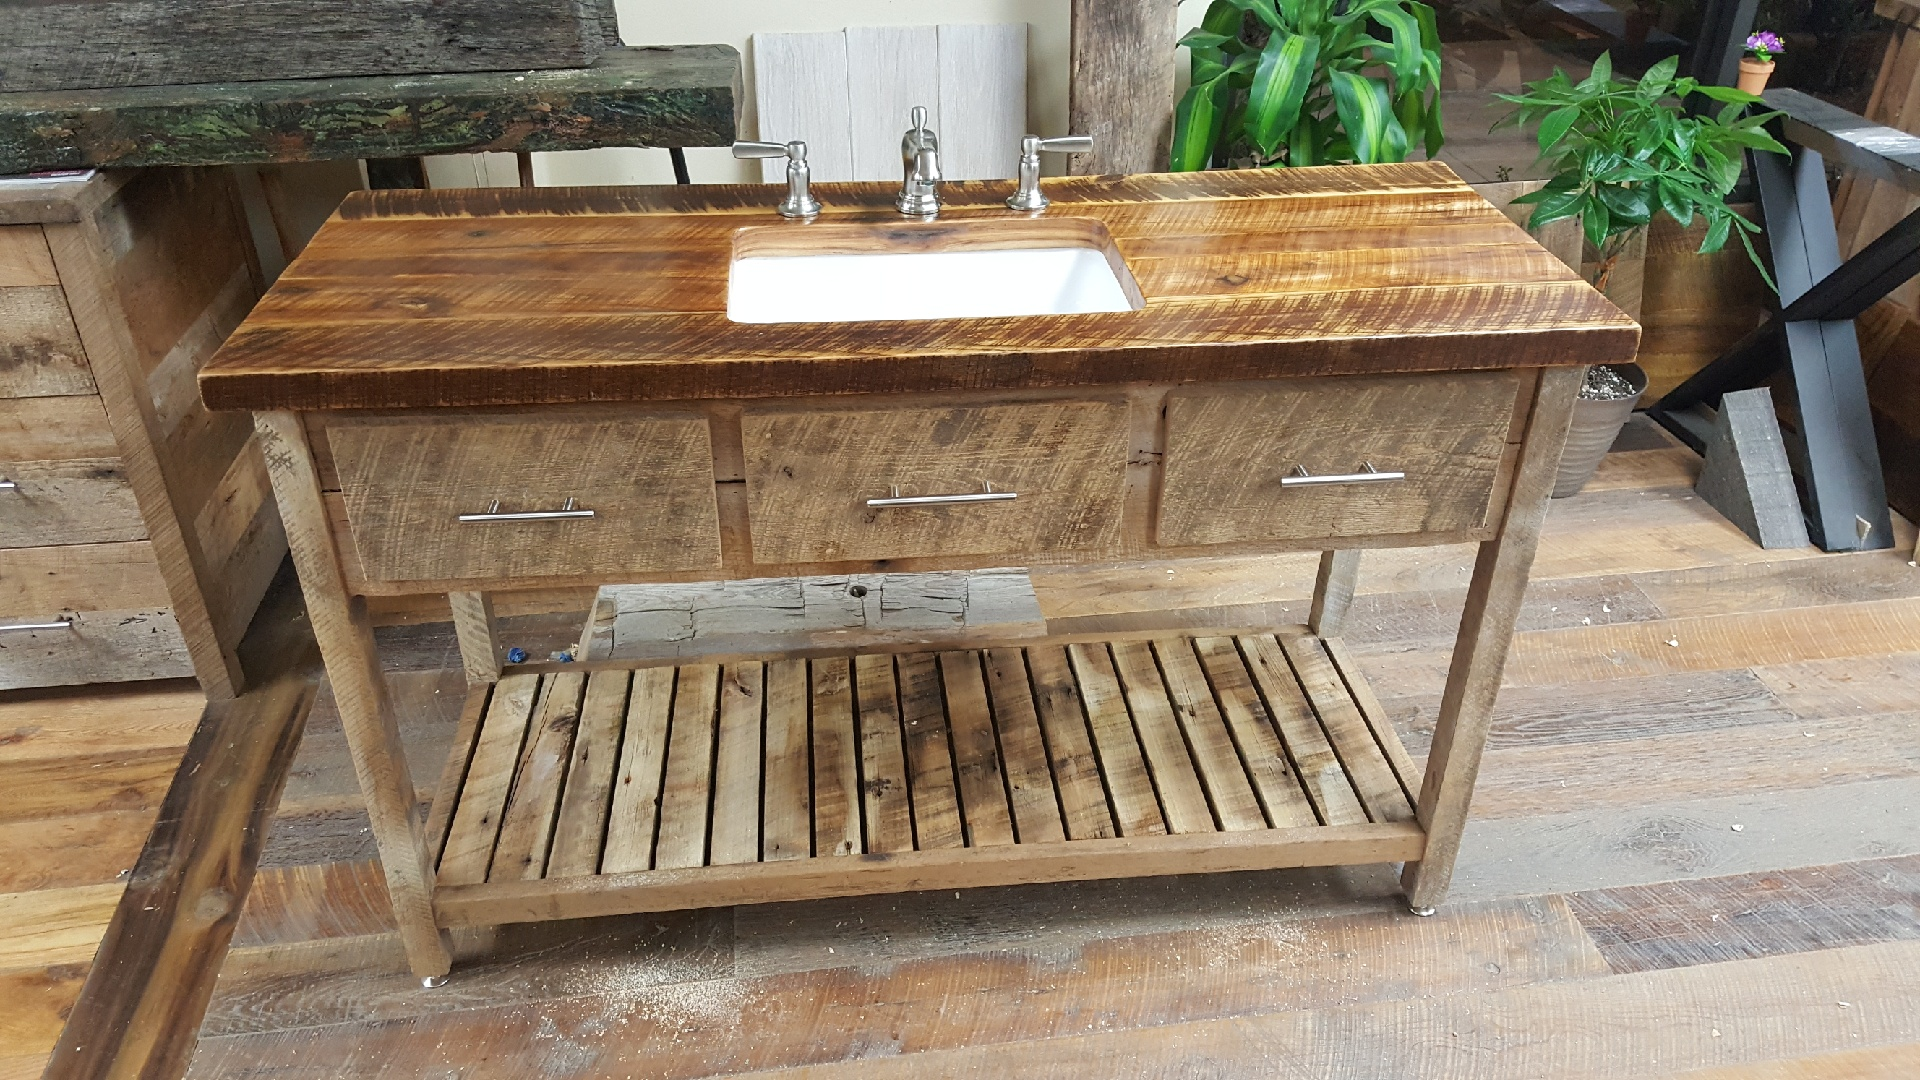 U.S. Reclaimed, Vintage Lumber & Wood Works can create a beautiful vanity with vintage reclaimed wood from across the United States. The vanity pictured above is just one of the many designs that can be custom created based on the customers wishes. Contact or visit the store to get started on any custom piece of furniture.